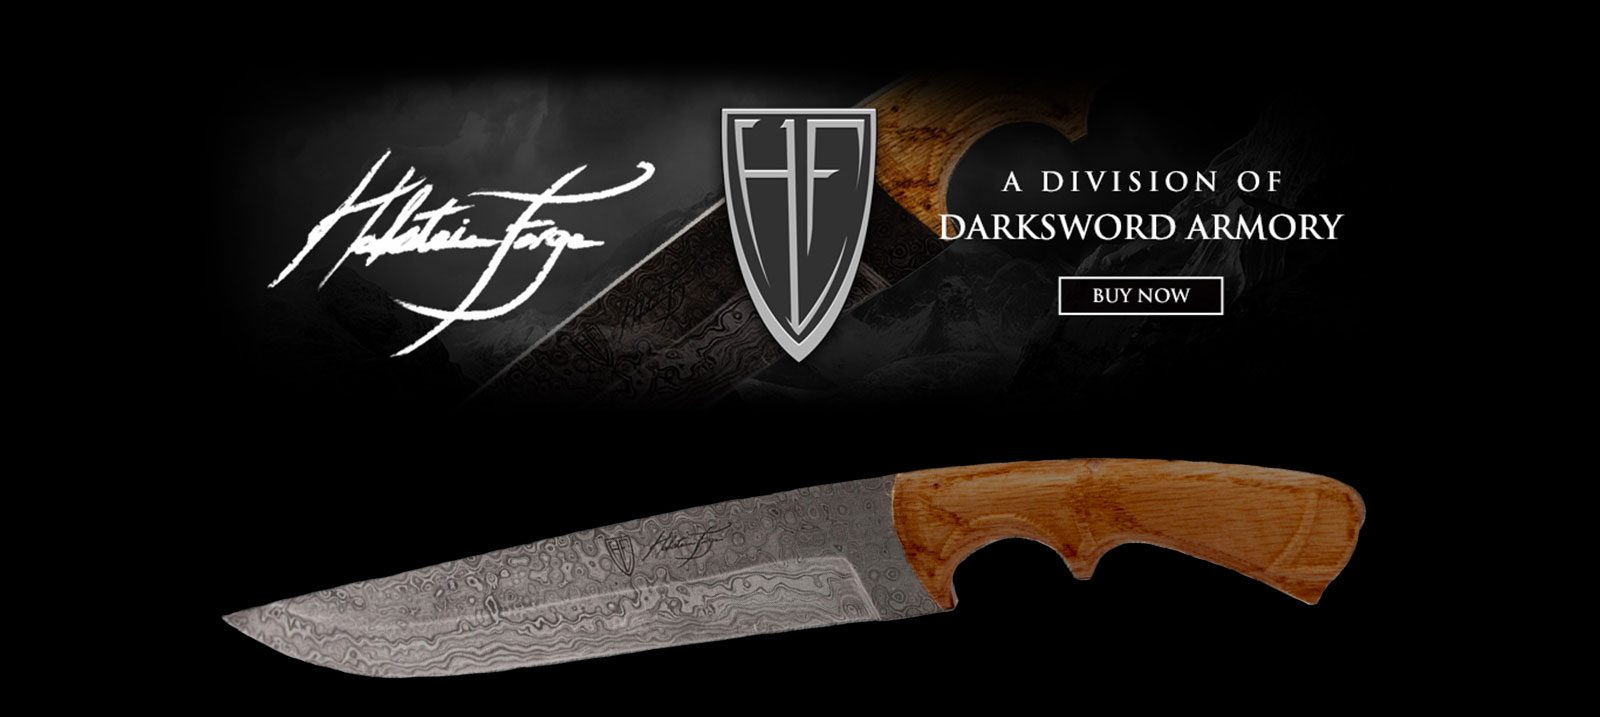 damascus-steel-knife-halstein-forge-banner